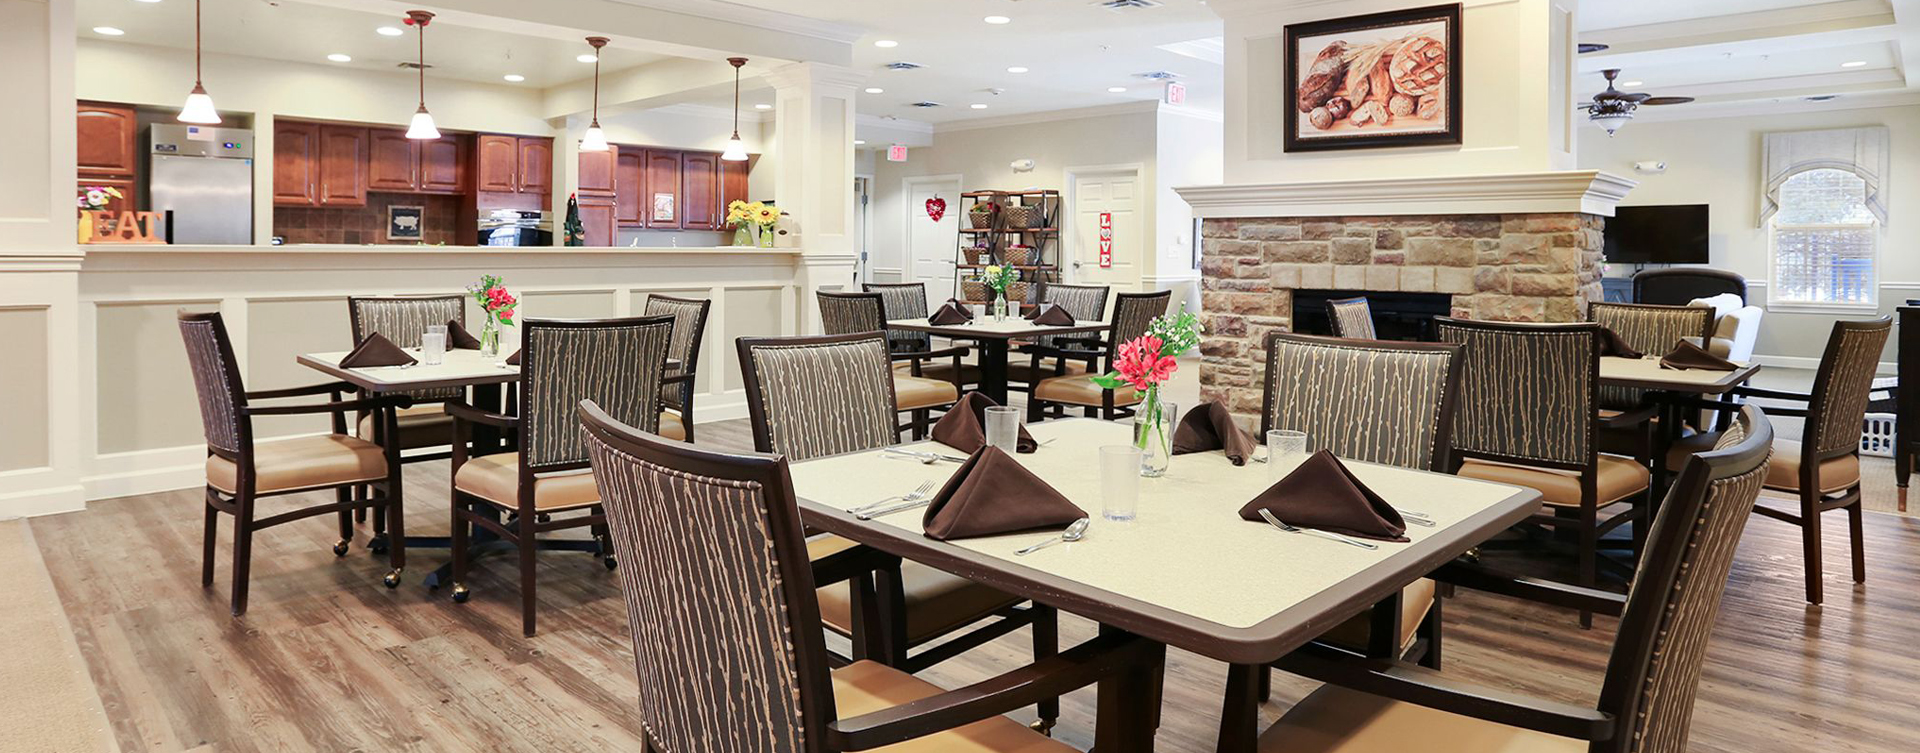 Mary B's country kitchen helps establish routines, creates activities and triggers a sense of meal time at Bickford of Champaign